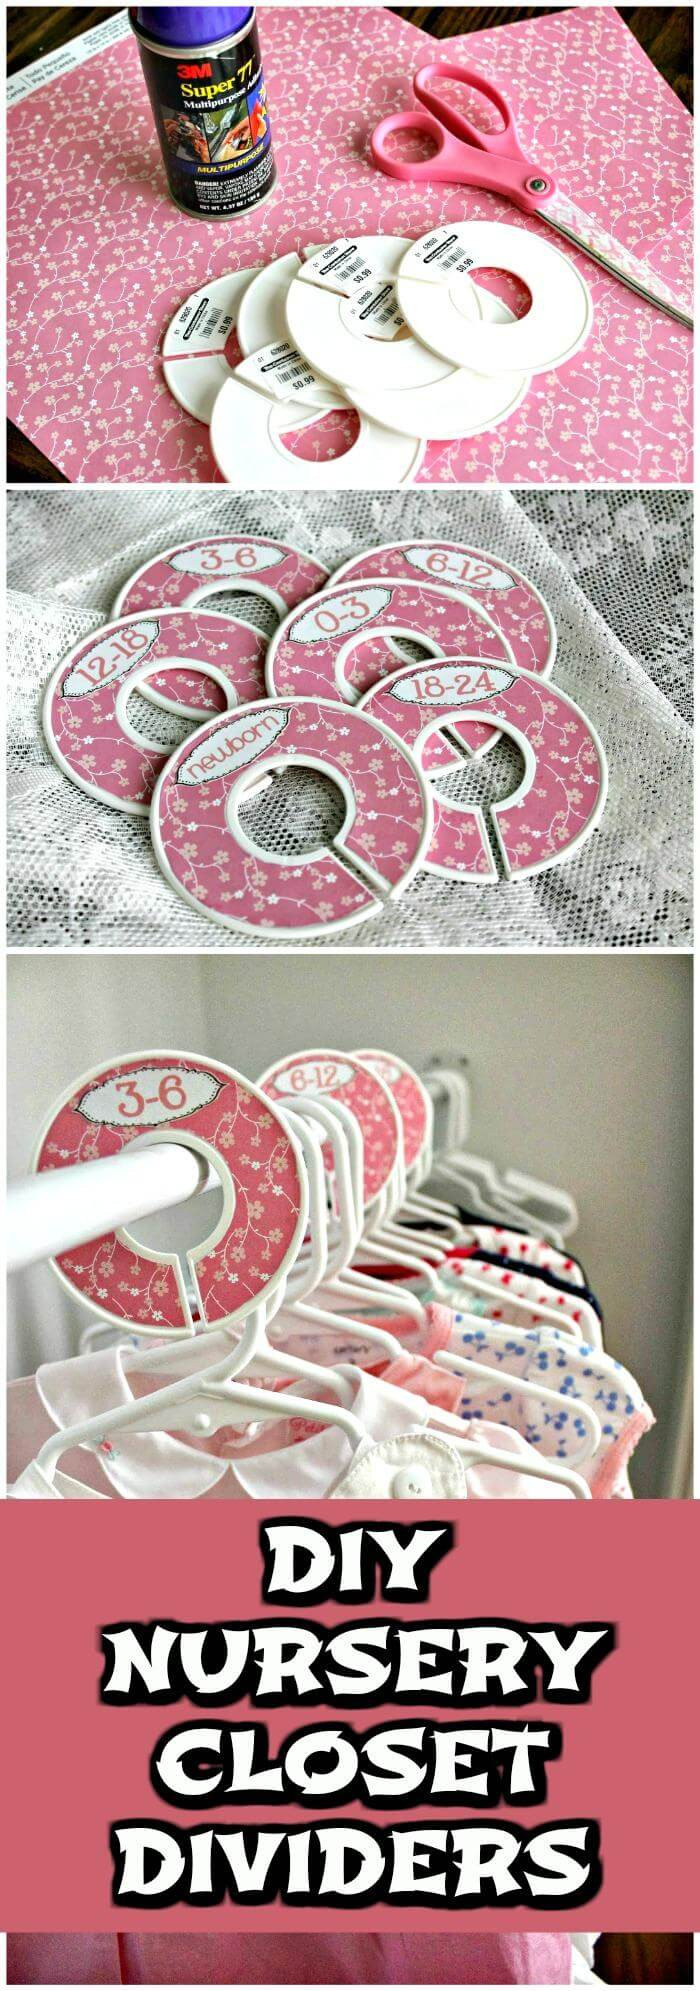 Best ideas about DIY Baby Closet Dividers . Save or Pin 20 Easy DIY Baby Closet Dividers To Organize Baby Clothes Now.